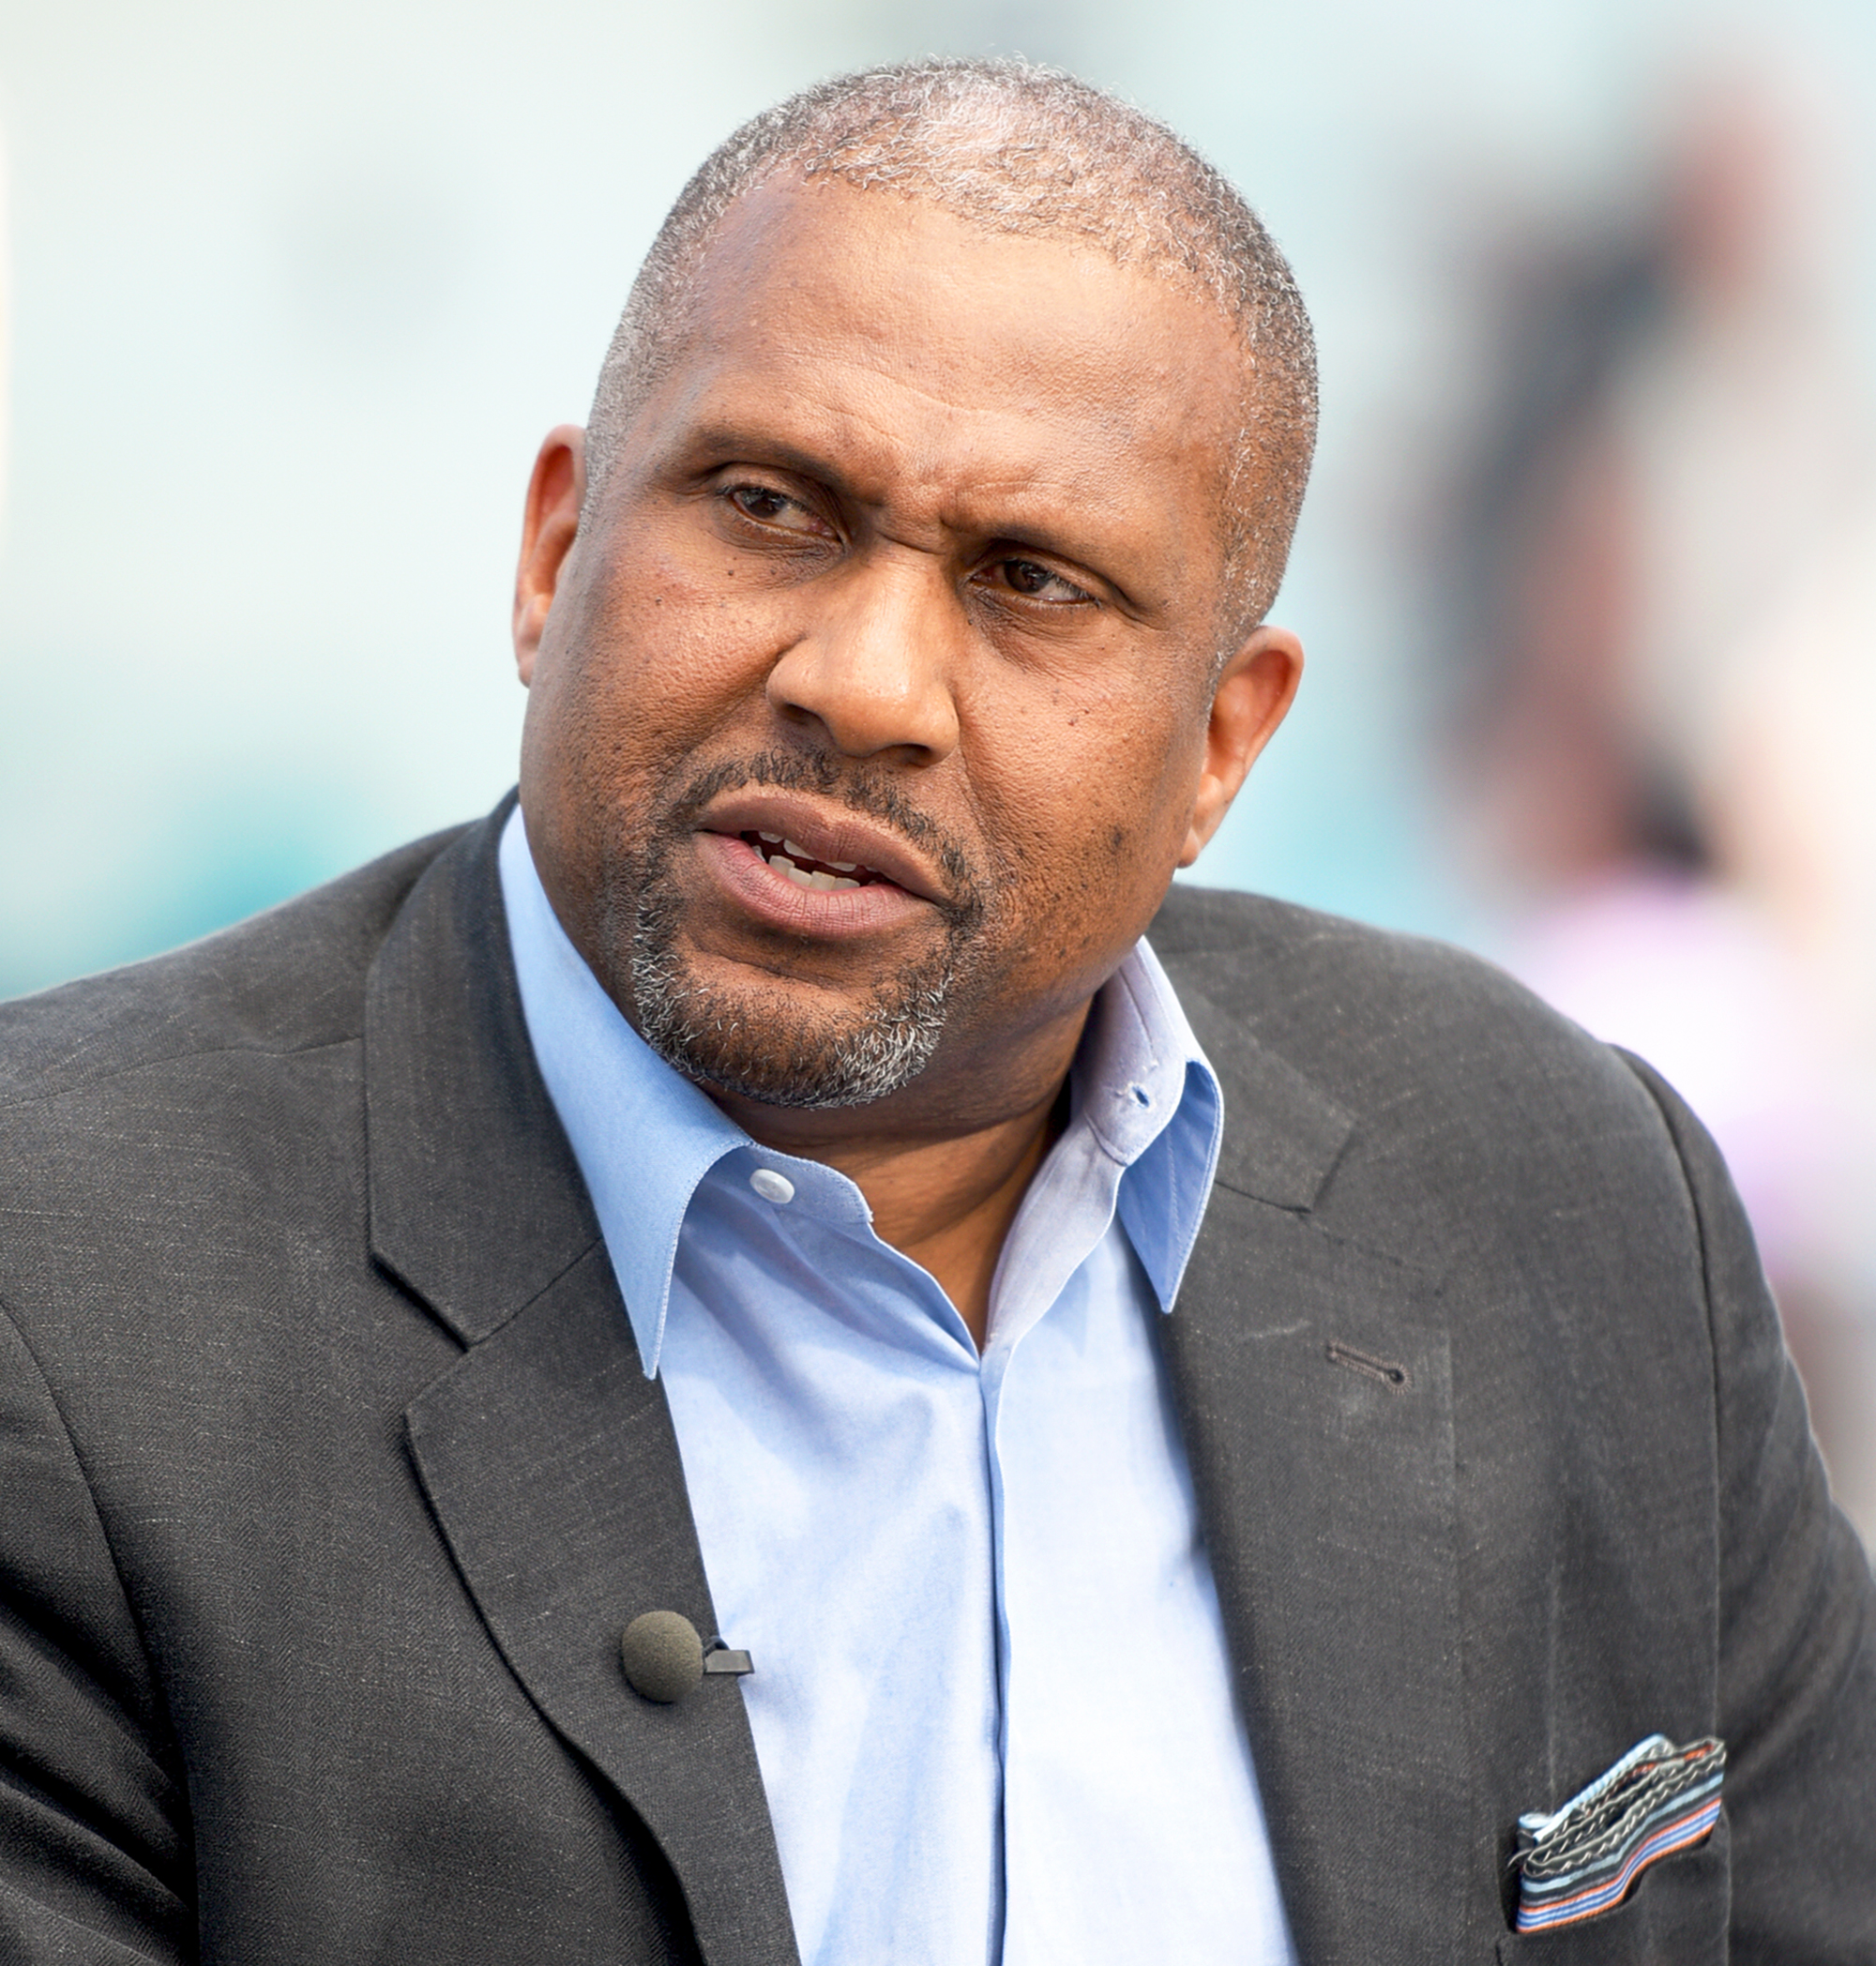 Tavis Smiley Sues PBS For Suspending His Show Following Sexual Harassment Allegations